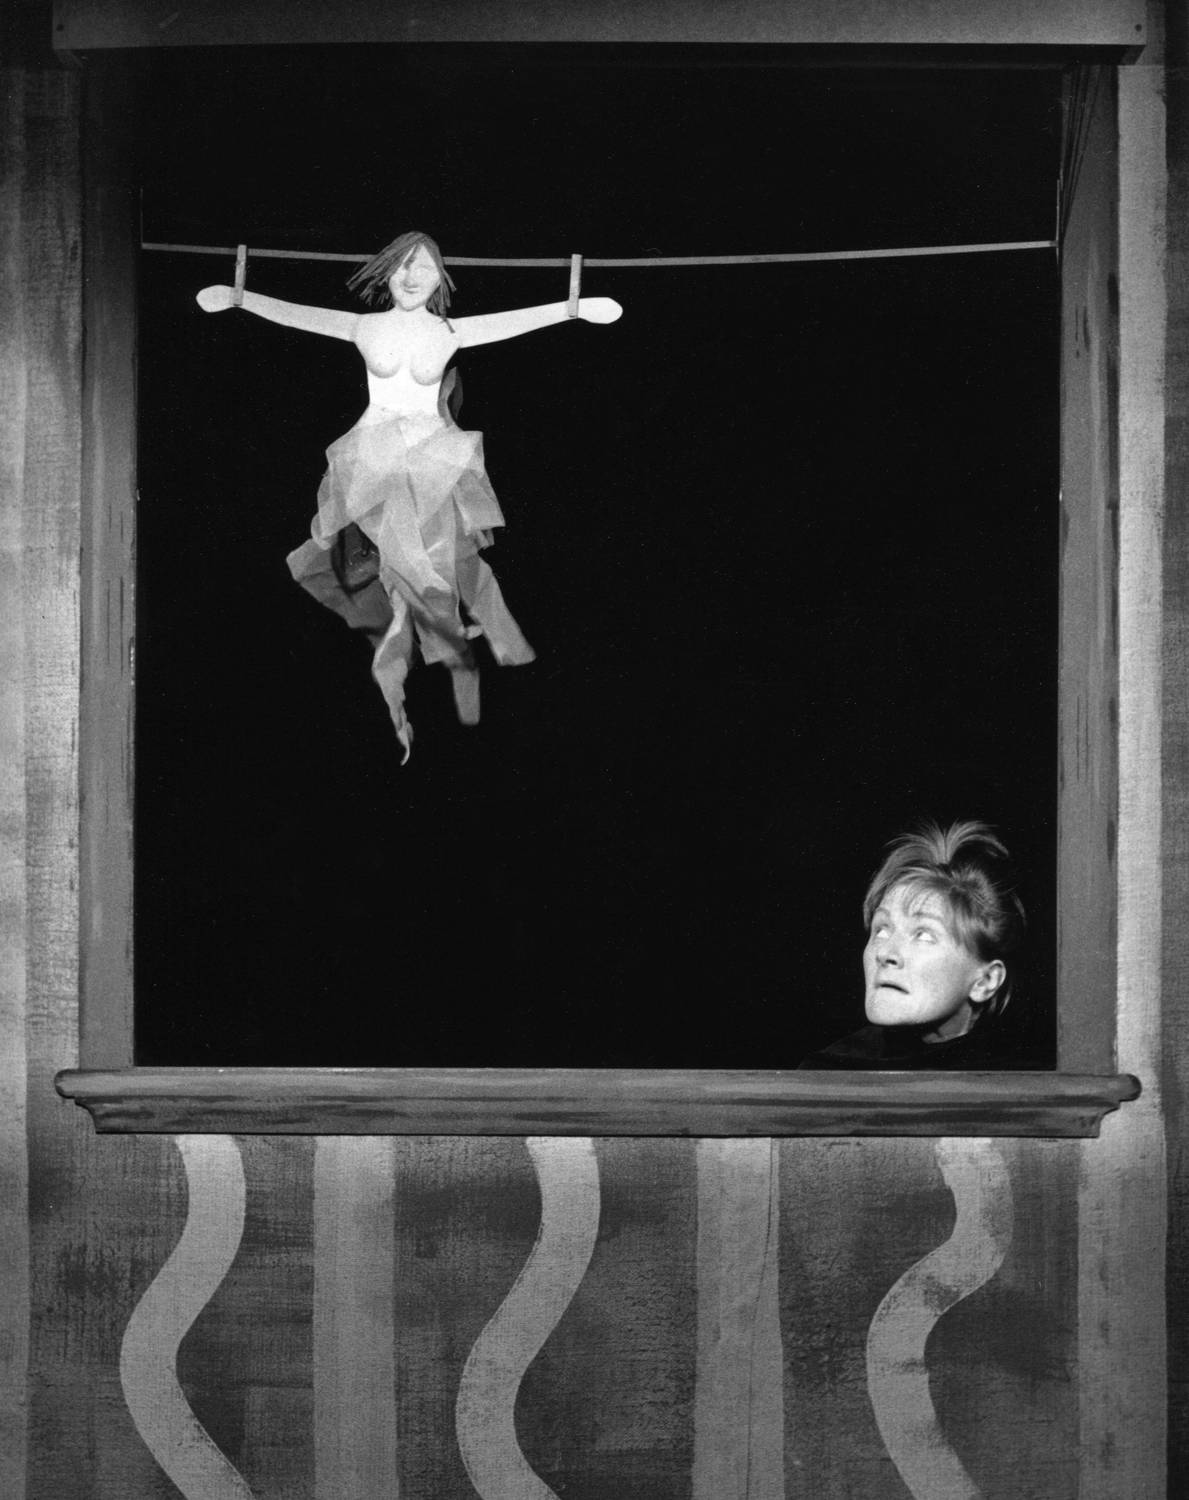 Handspan Theatre's Daze of Our Lives woman's face looking up front the bottom of a booth opening at a fairy figure hanging in the air